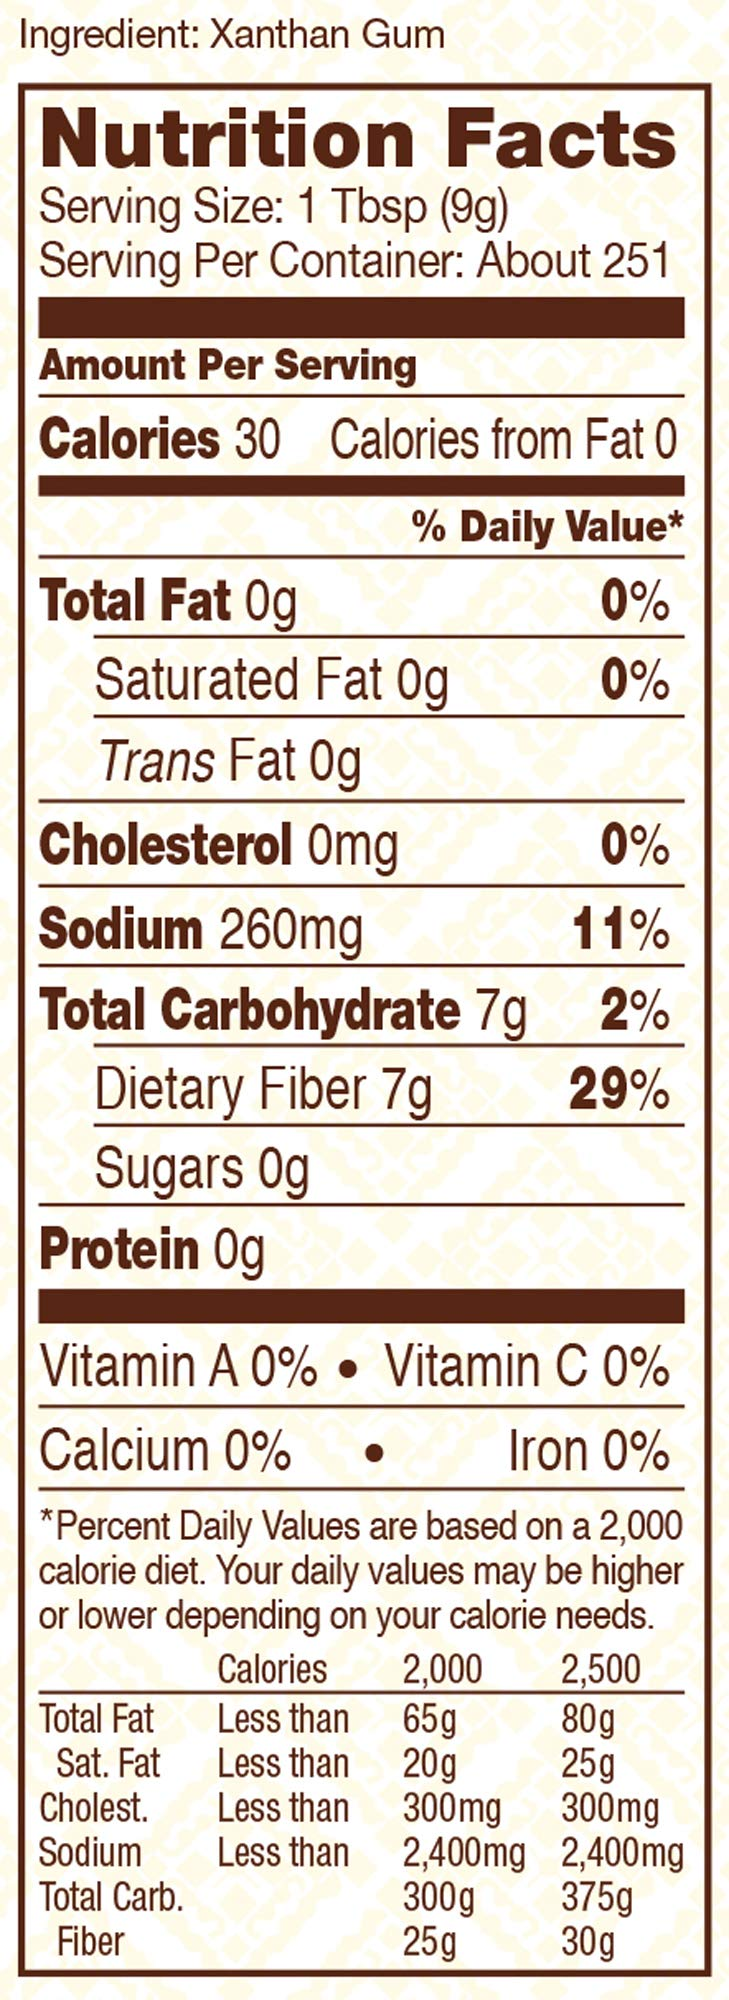 Bob's Red Mill Gluten Free Xanthan Gum, 5 Pounds by Bob's Red Mill (Image #2)